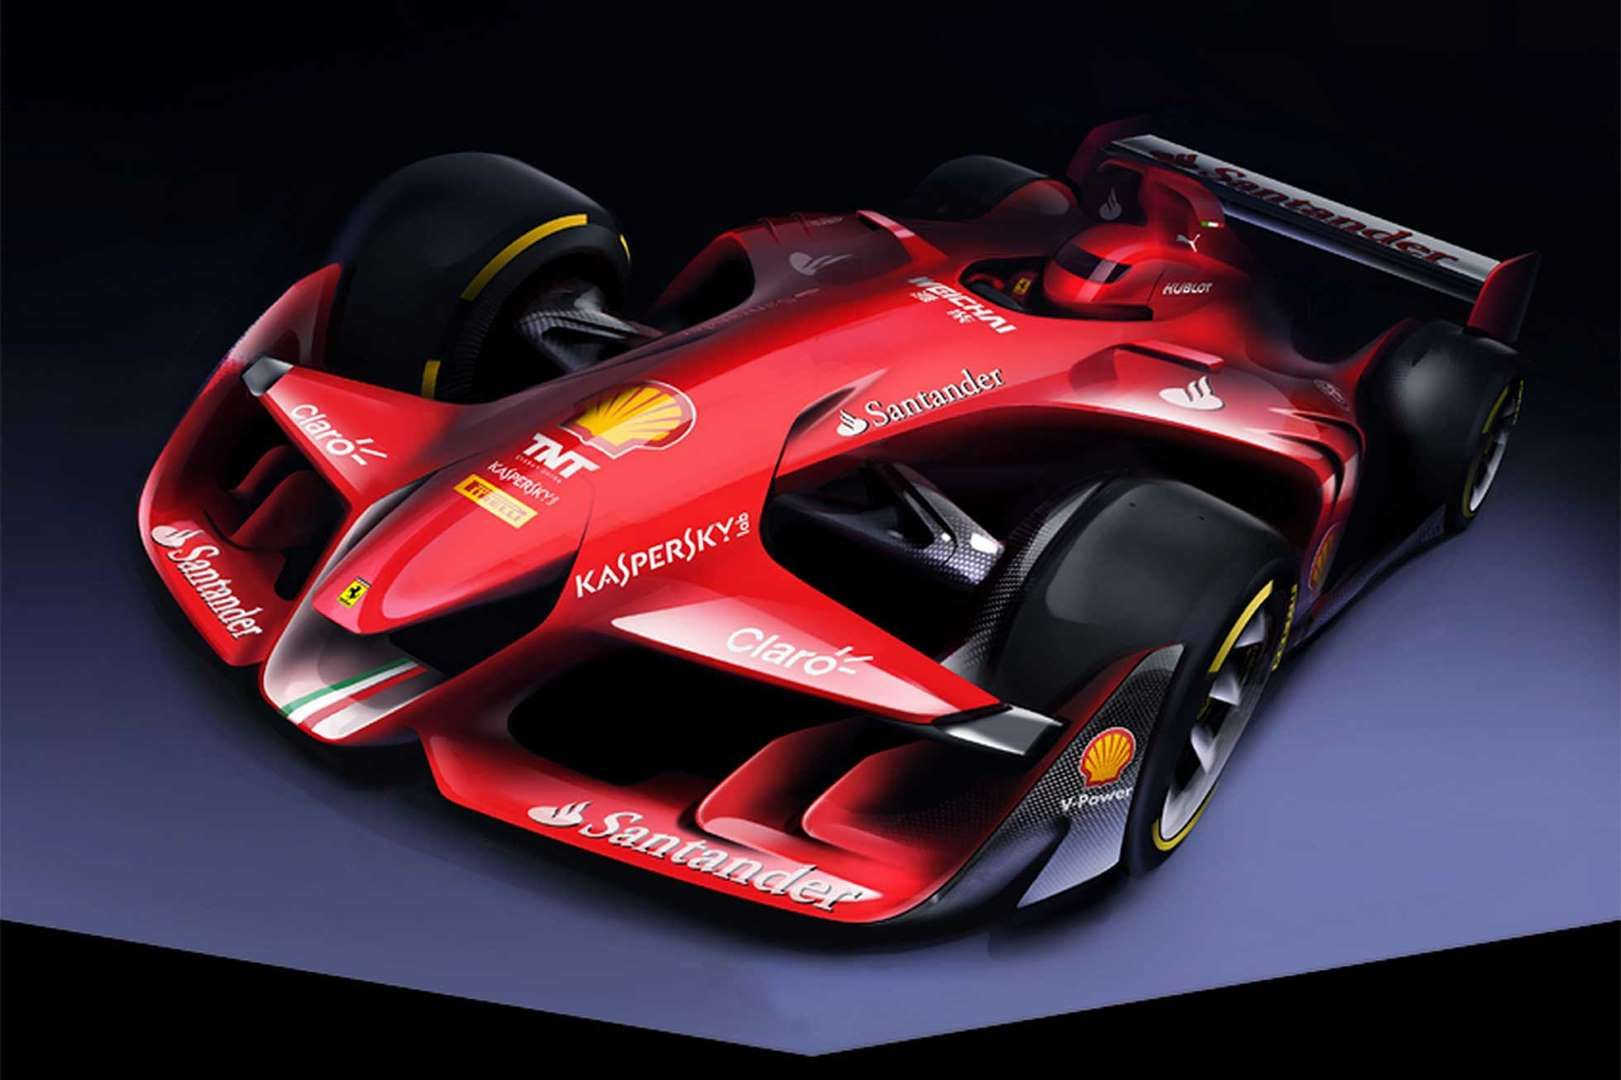 F1 by Michael Formula 1 car, Concept cars, Ferrari